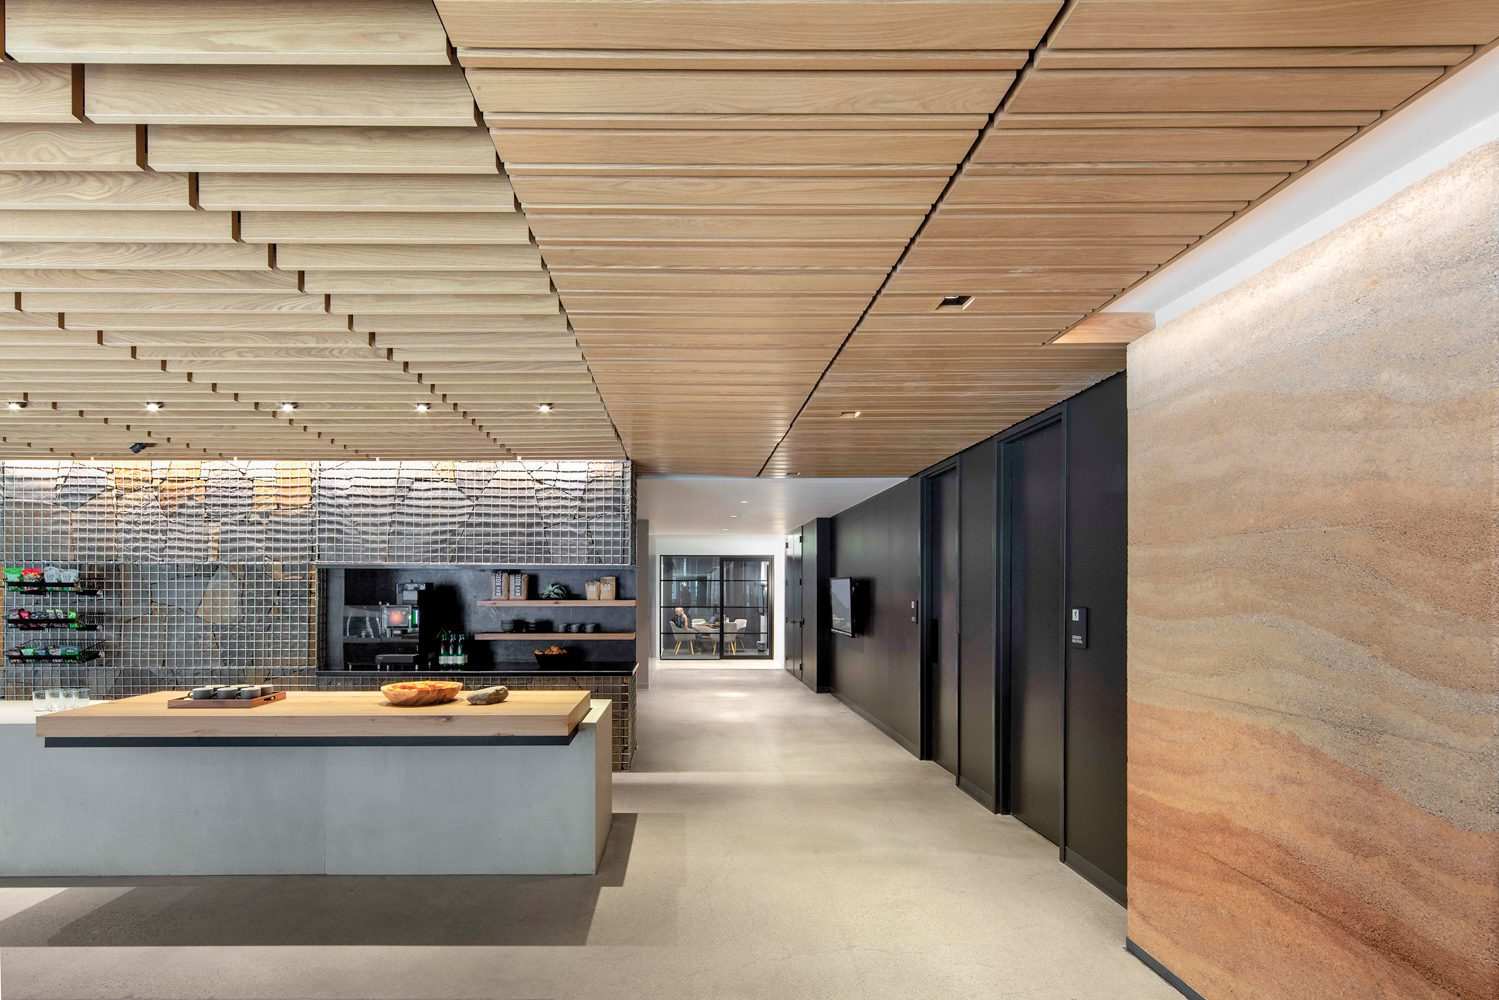 Rammed-earth paneling and a flagstone gabion wall frame the coffee bar.